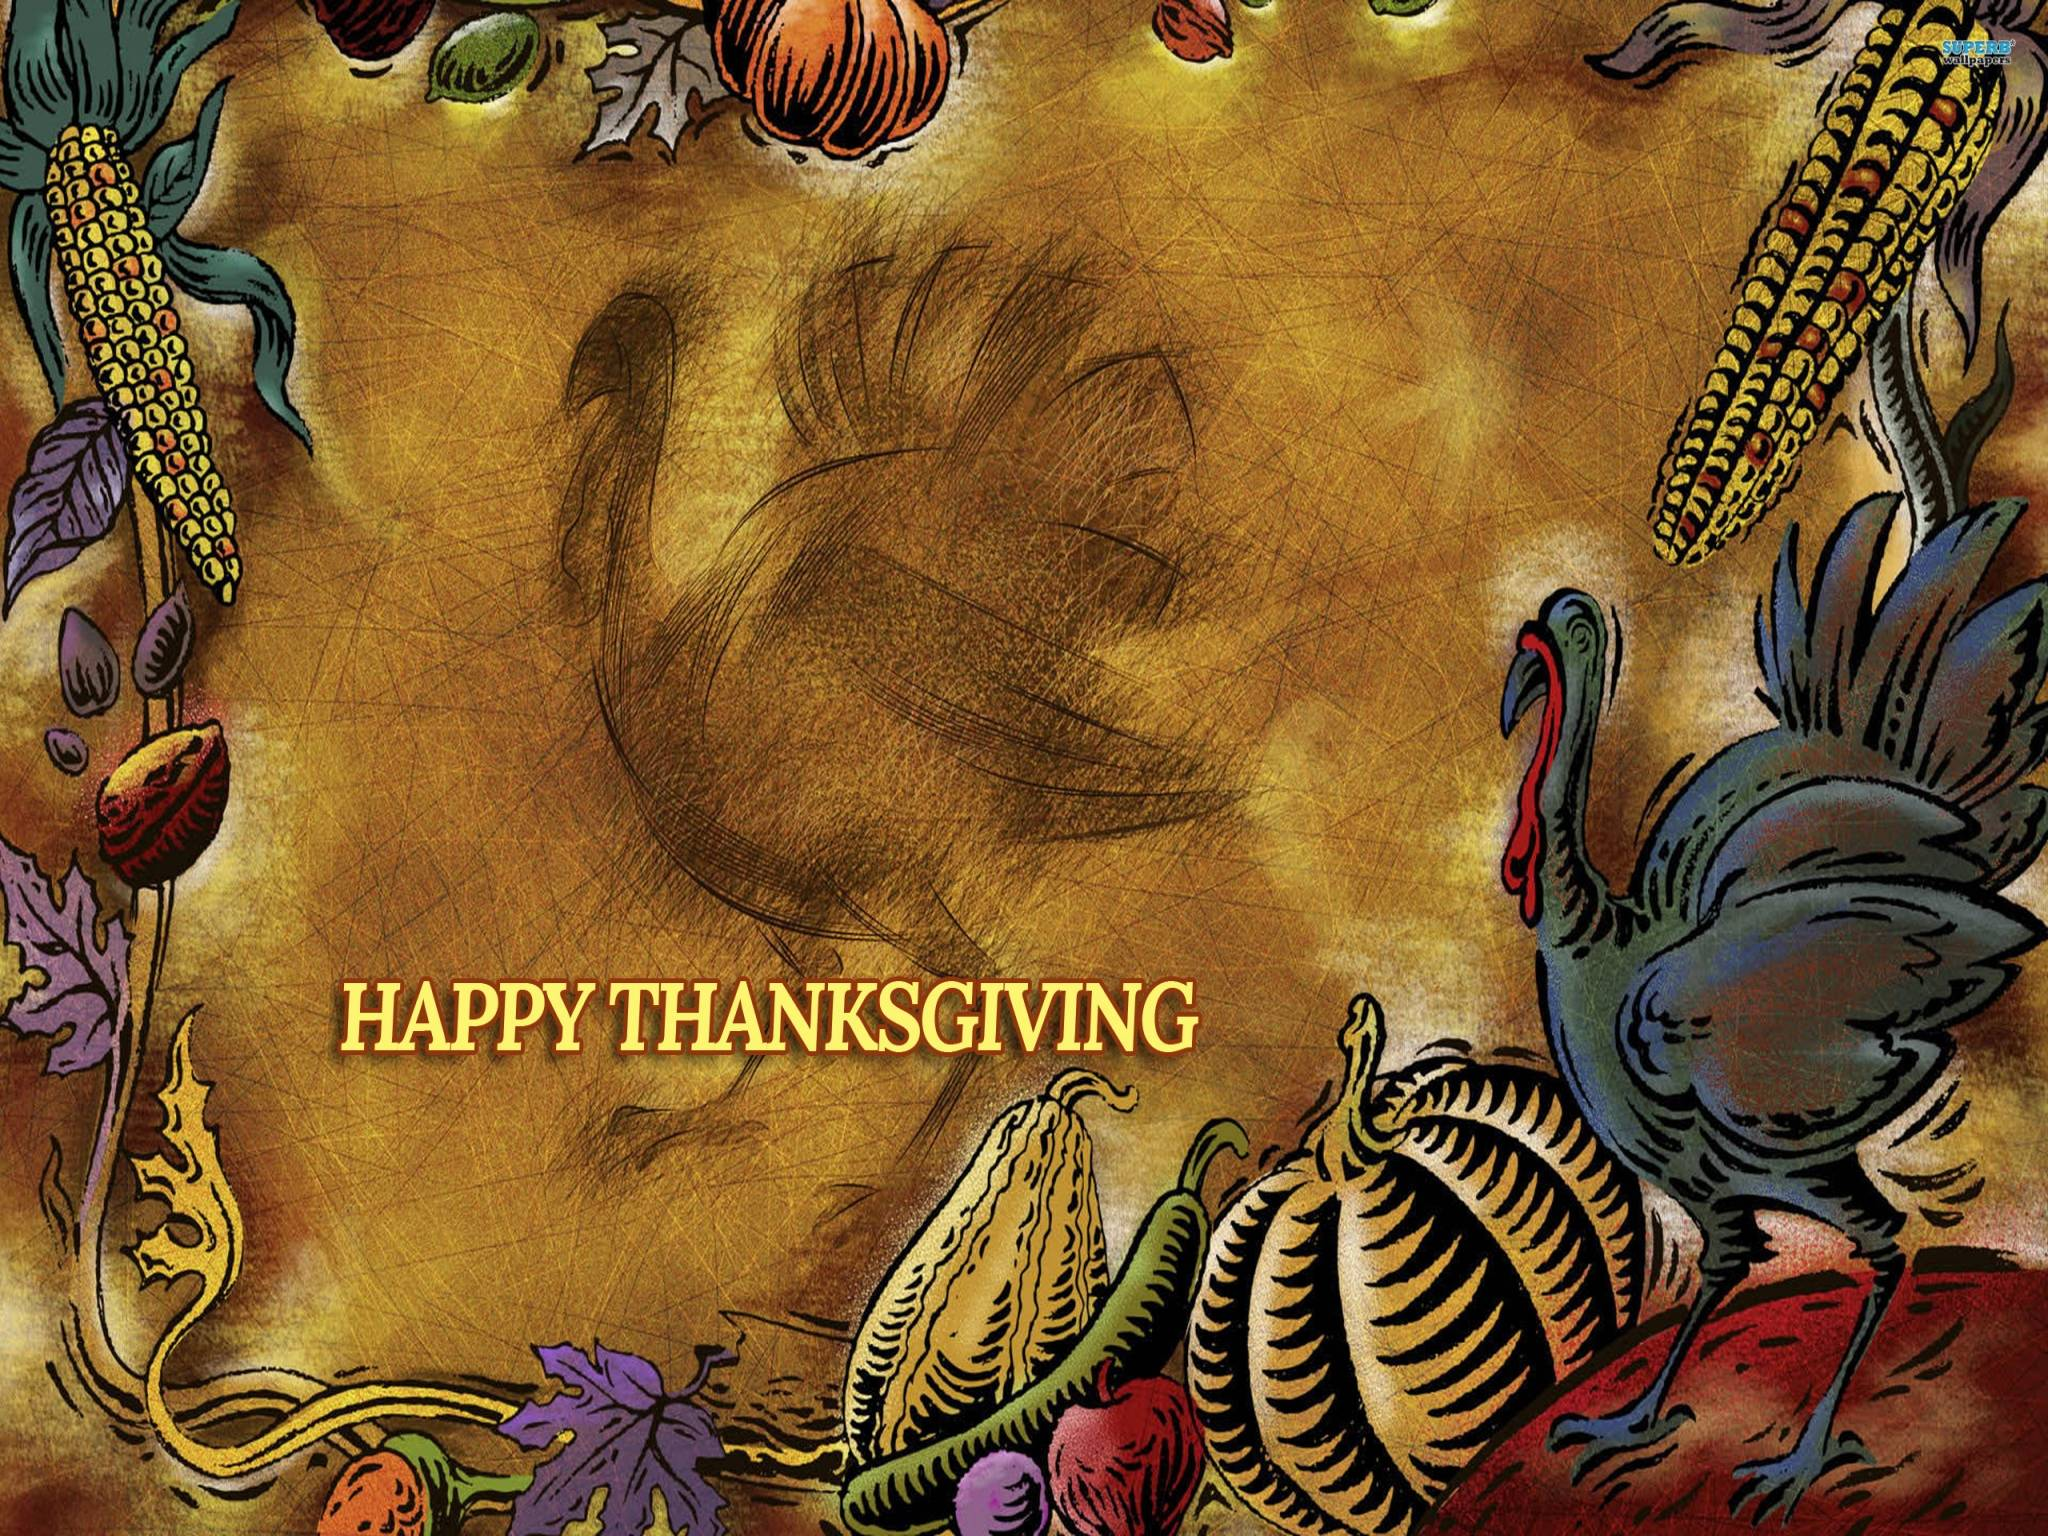 happy thanksgivinghd wallpapers - photo #25